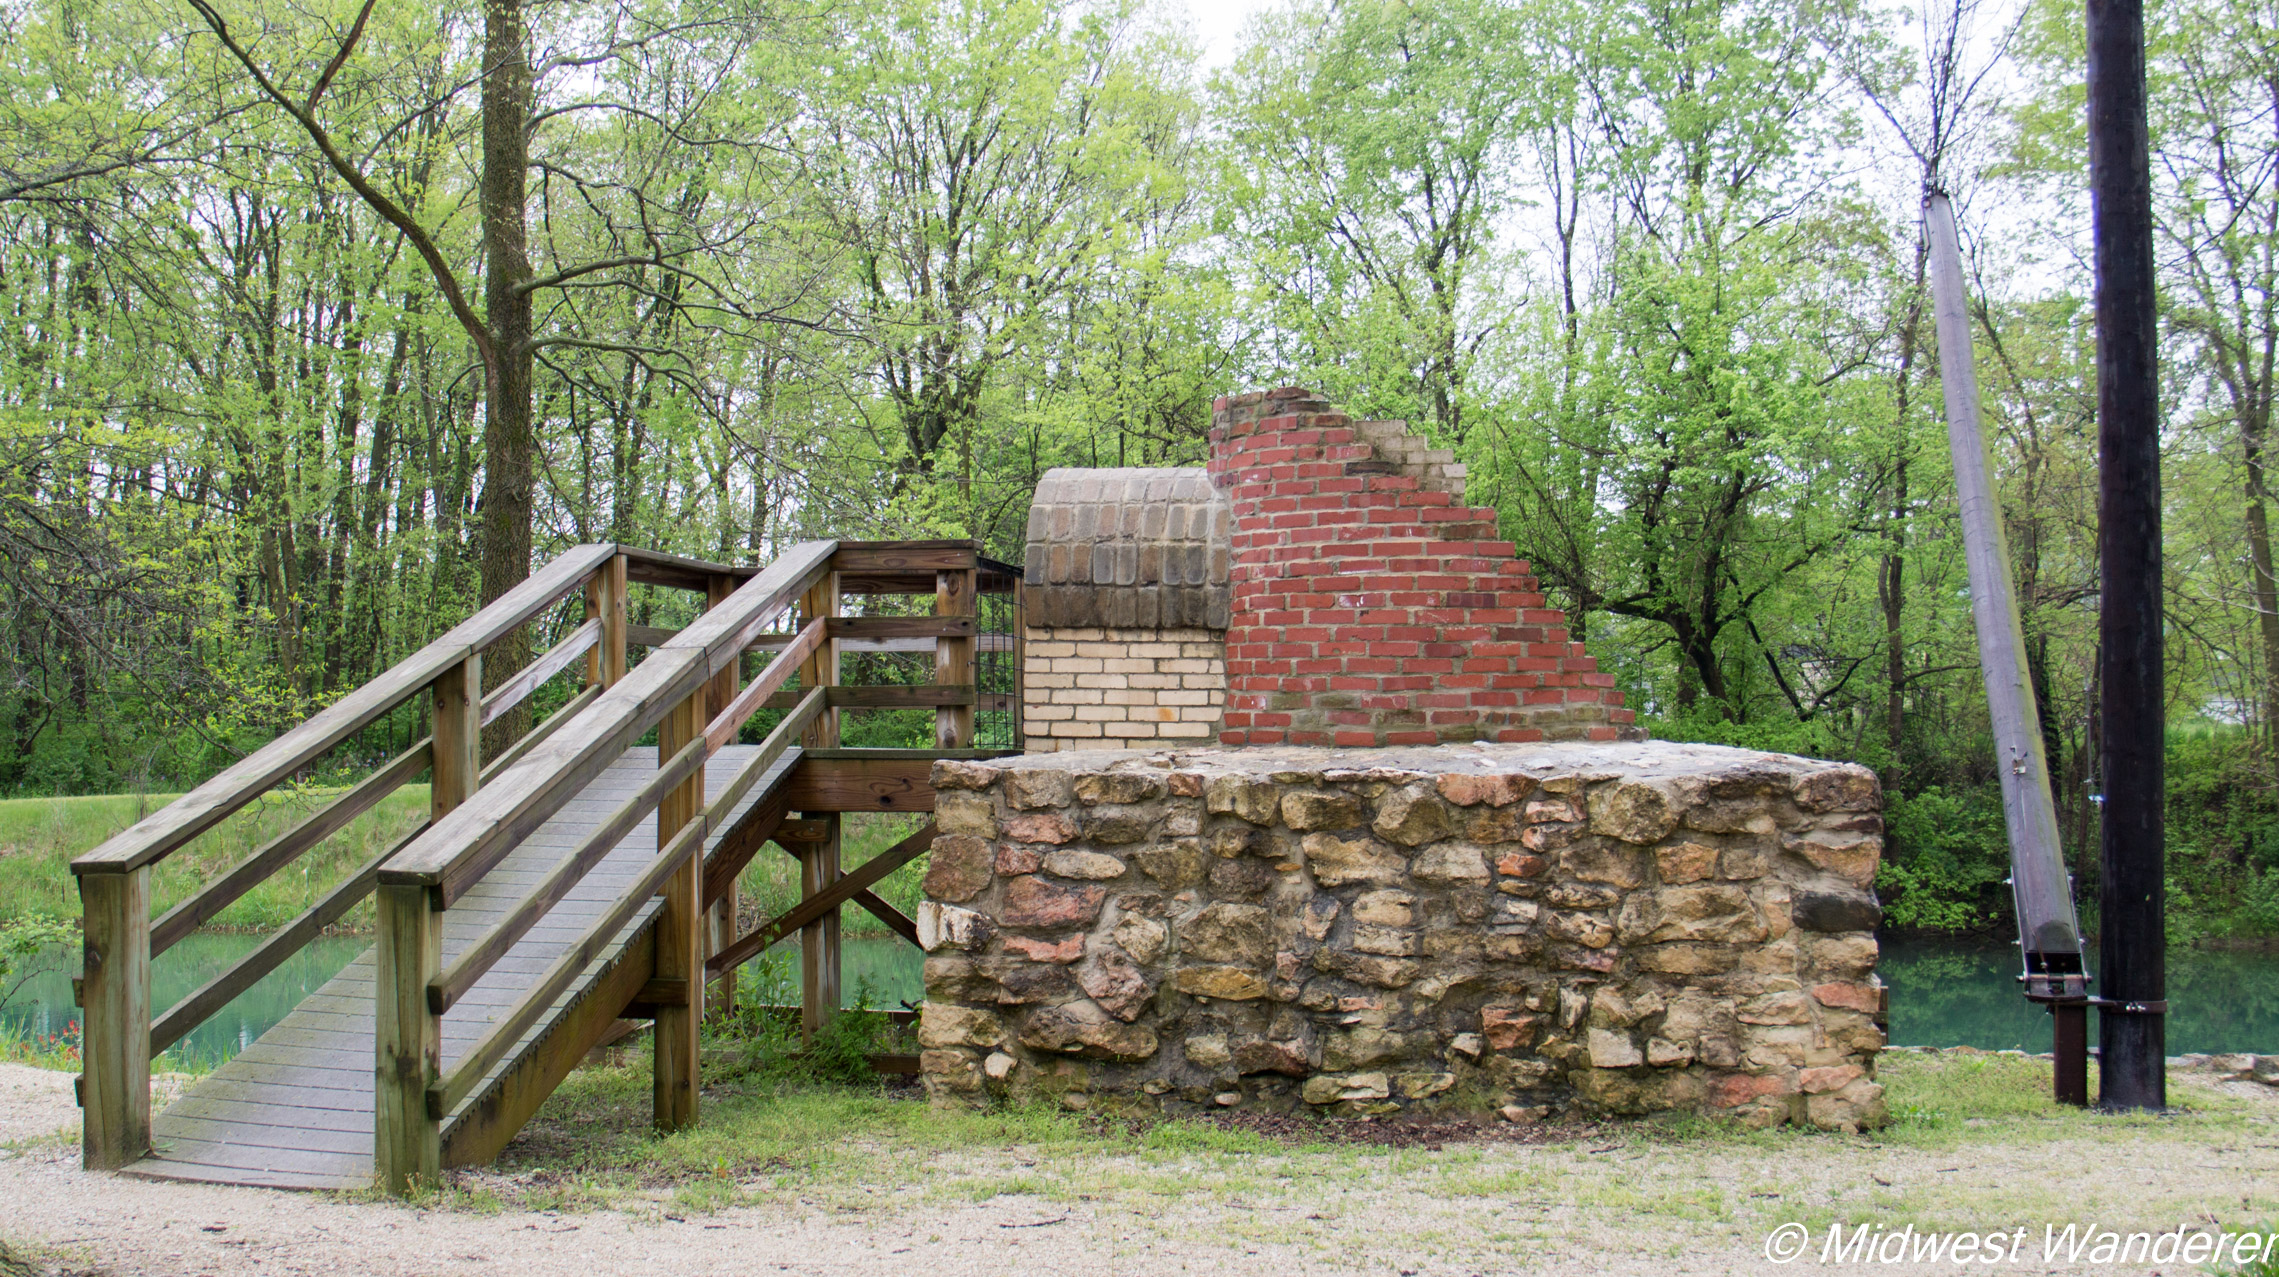 Wabash and Erie Canal kiln - 1